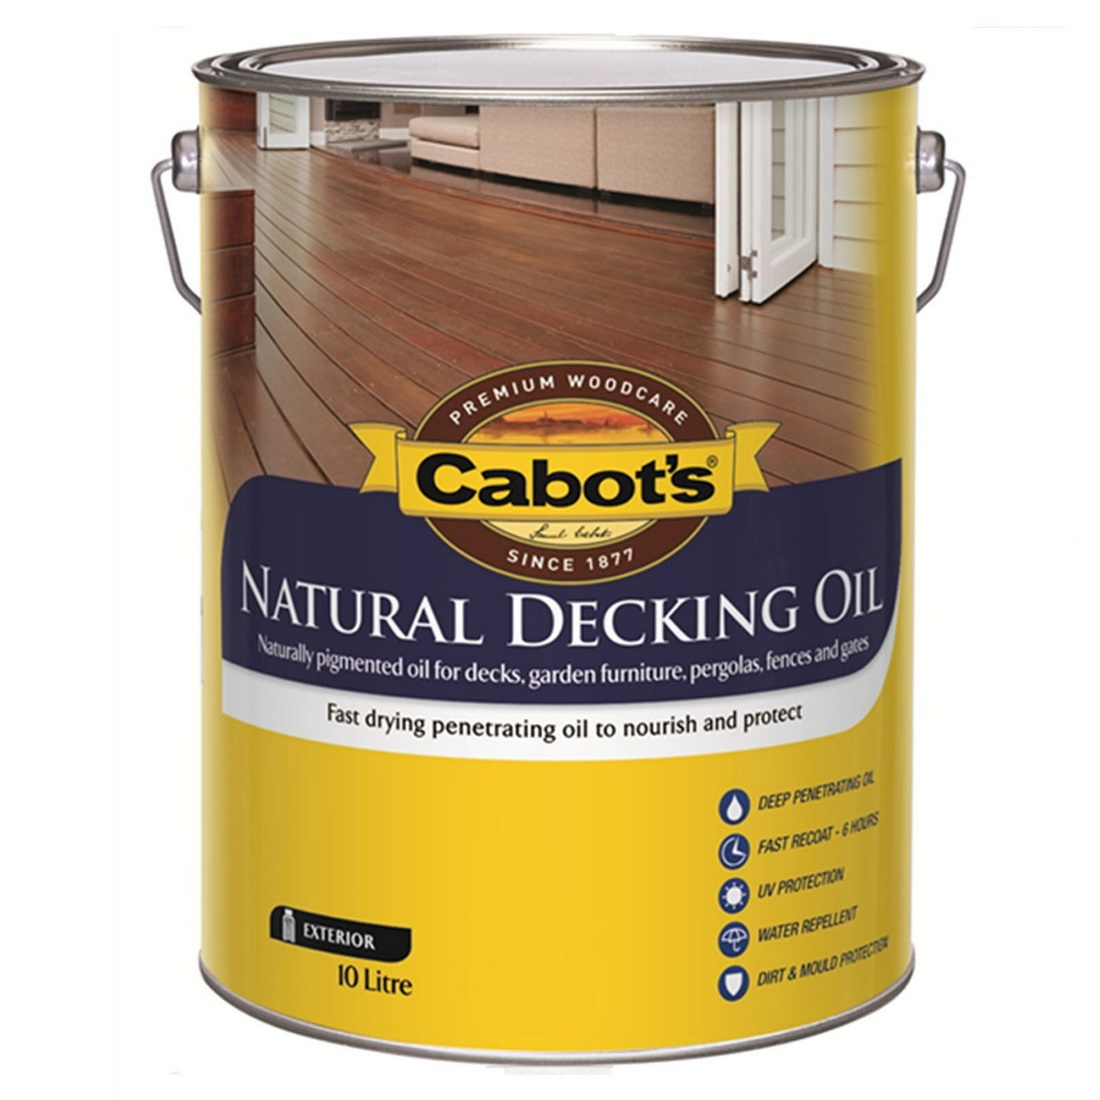 Natural Decking Oil Traditional Pine 10L 83682171-10LZ